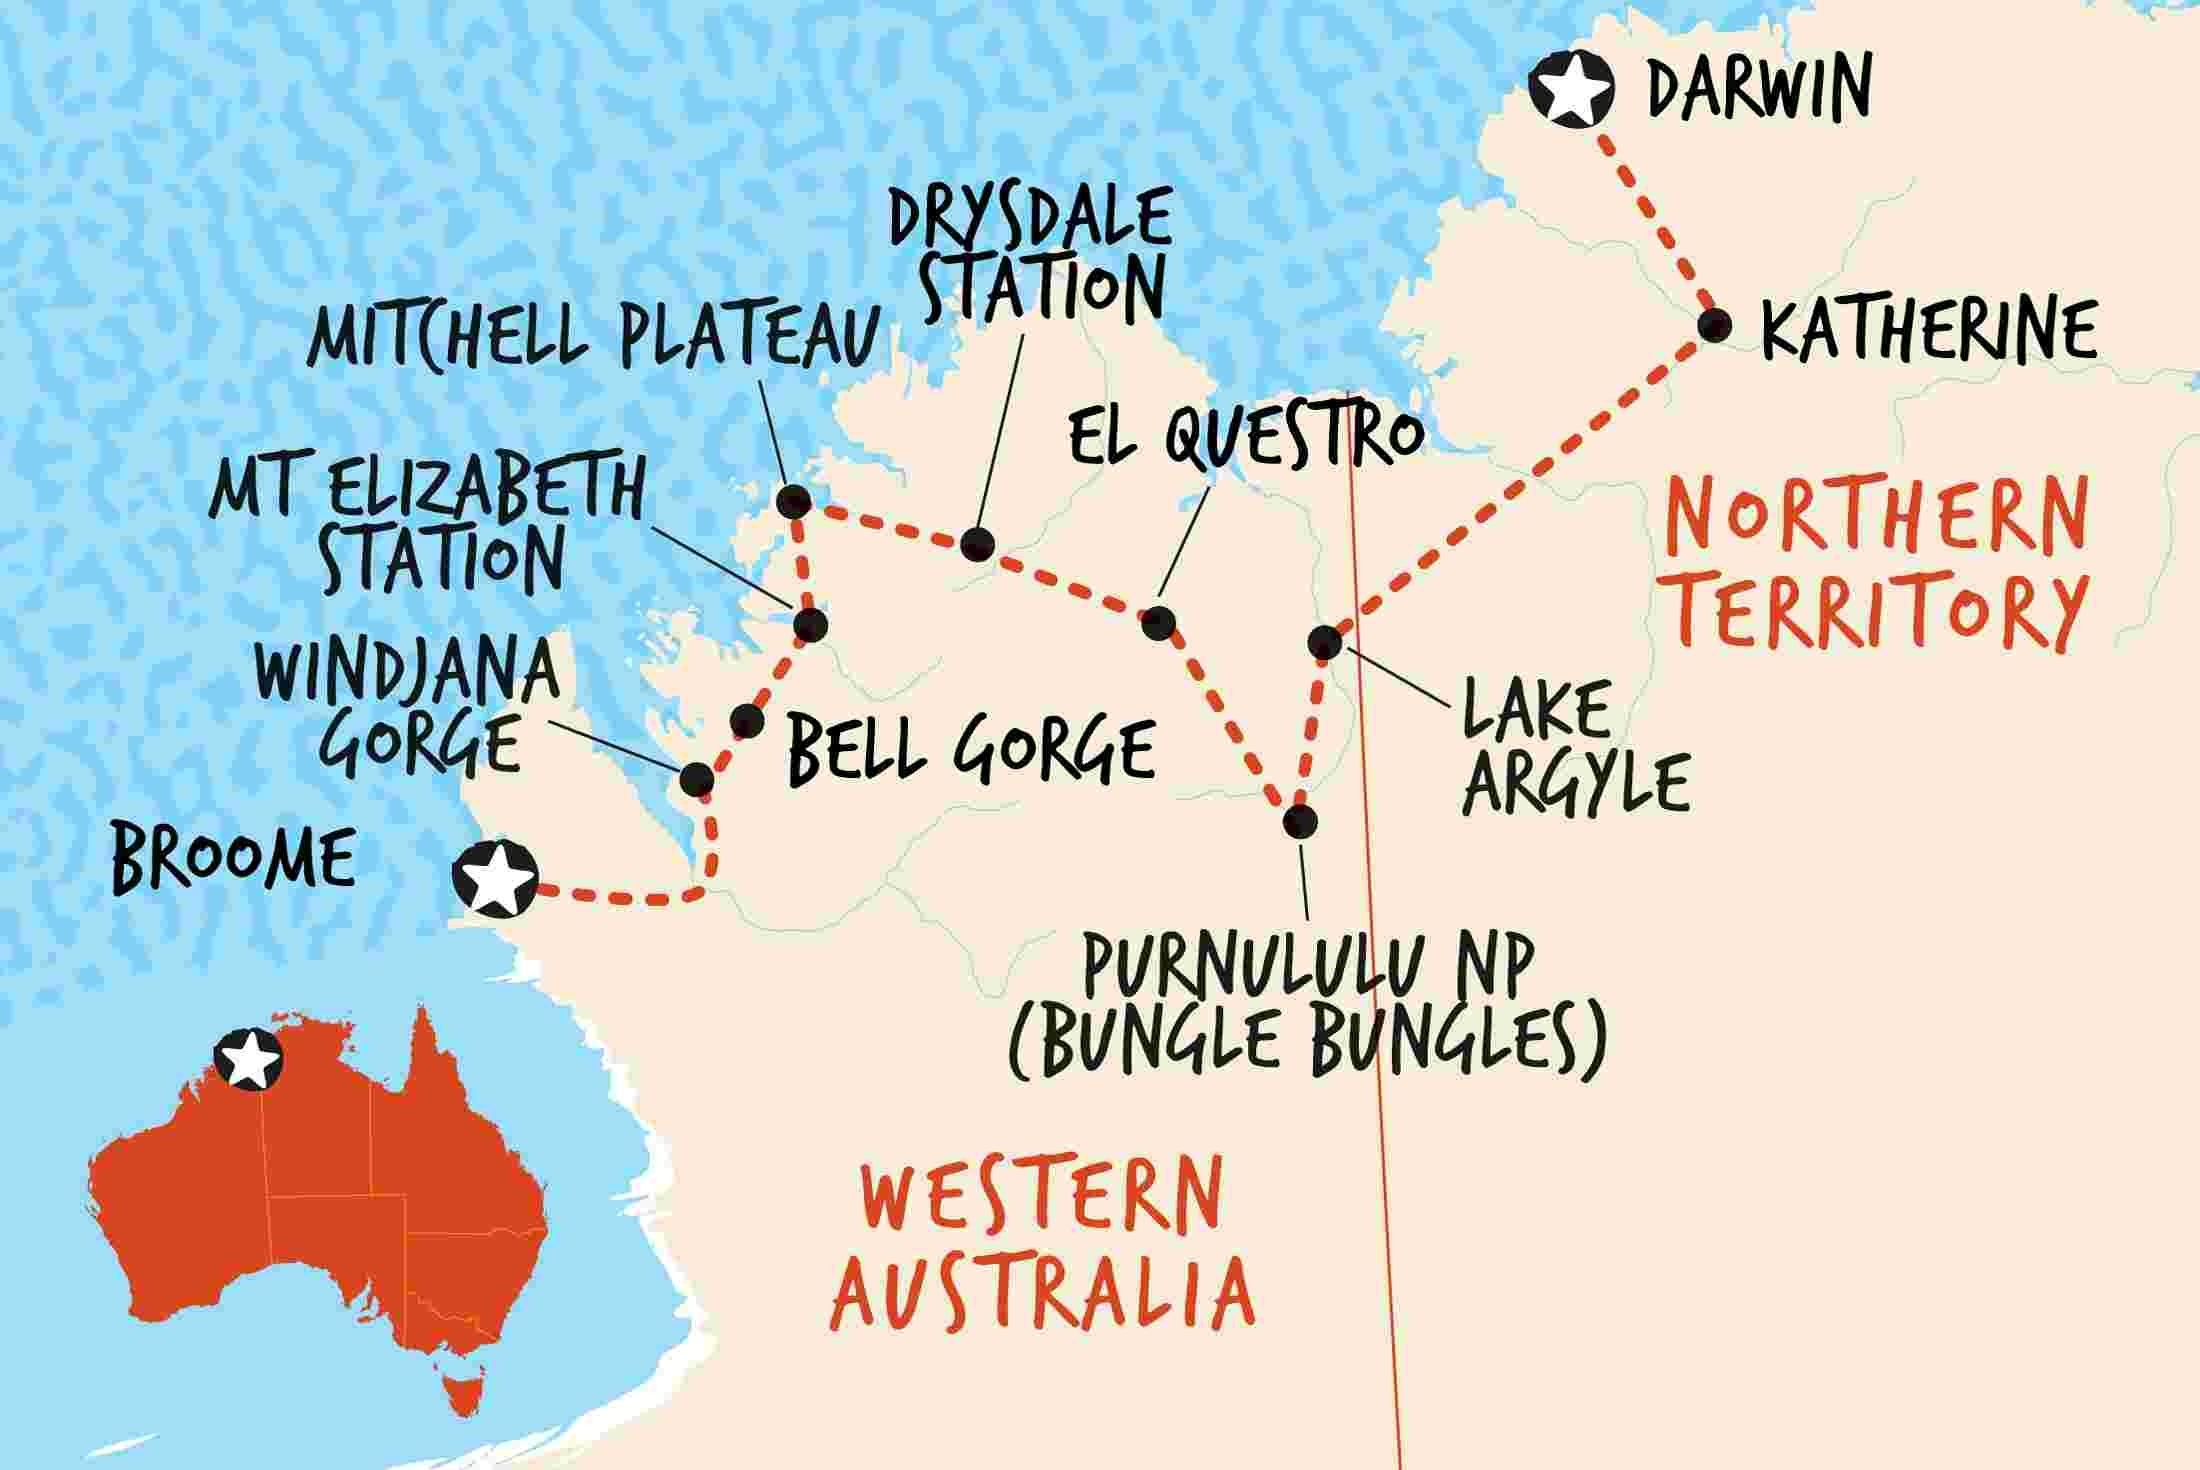 great artesian basin australia map, townsville australia map, devil's marbles australia map, australian capital territory australia map, west australia map, new zealand and australia map, lake argyle australia map, kuri bay australia map, cape york peninsula australia map, lake eyre basin australia map, torres strait australia map, great australian bight australia map, sydney australia map, the top end australia map, major mountain ranges on world map, ballarat australia map, dundee australia map, hamilton australia map, wellington australia map, australian central lowlands map, on kimberley australia map